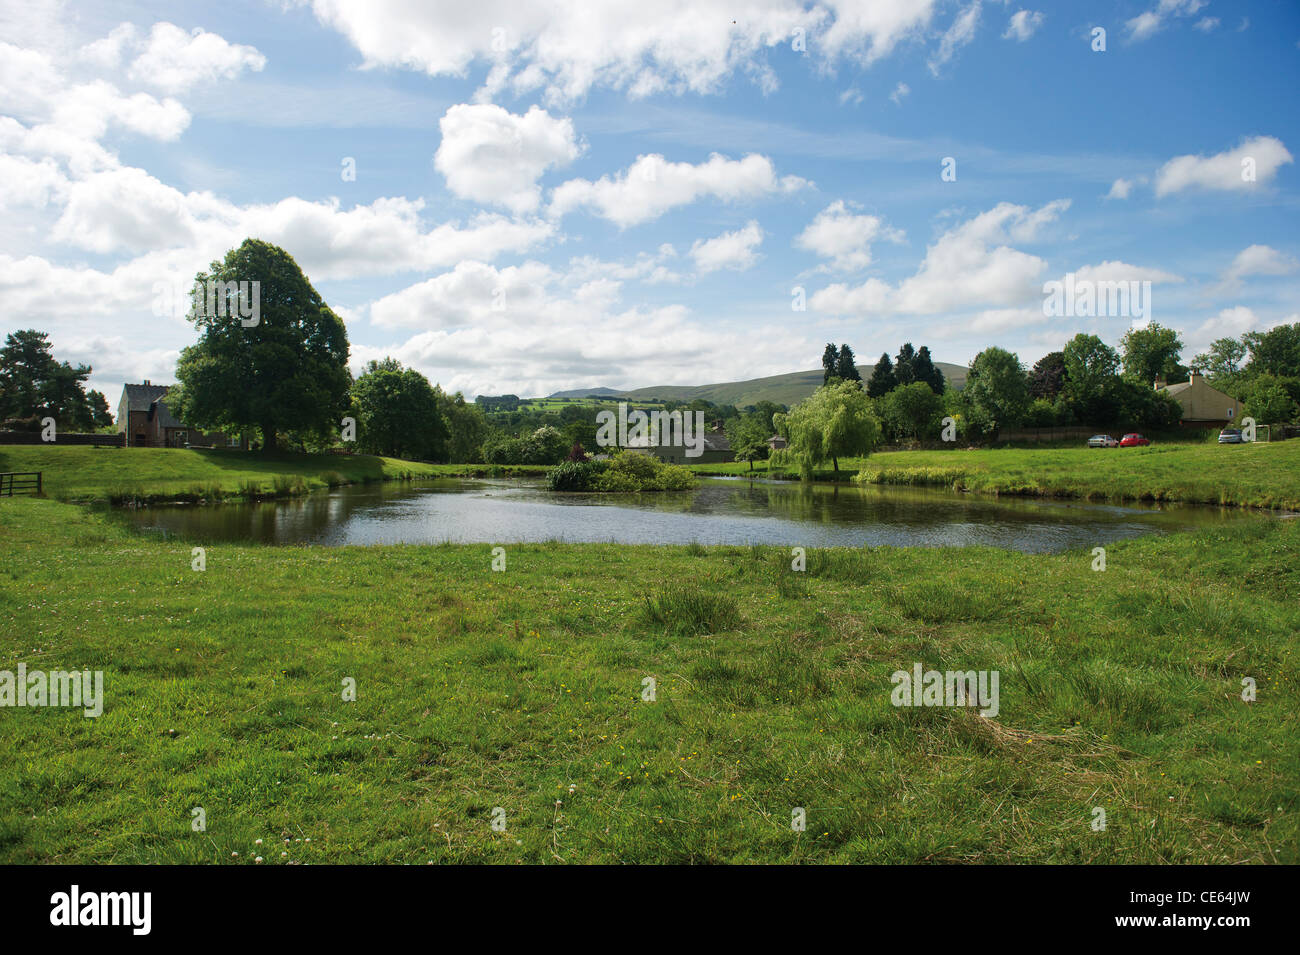 The duck pond in Caldbeck Cumbrian Village Lake District UK English Countryside - Stock Image